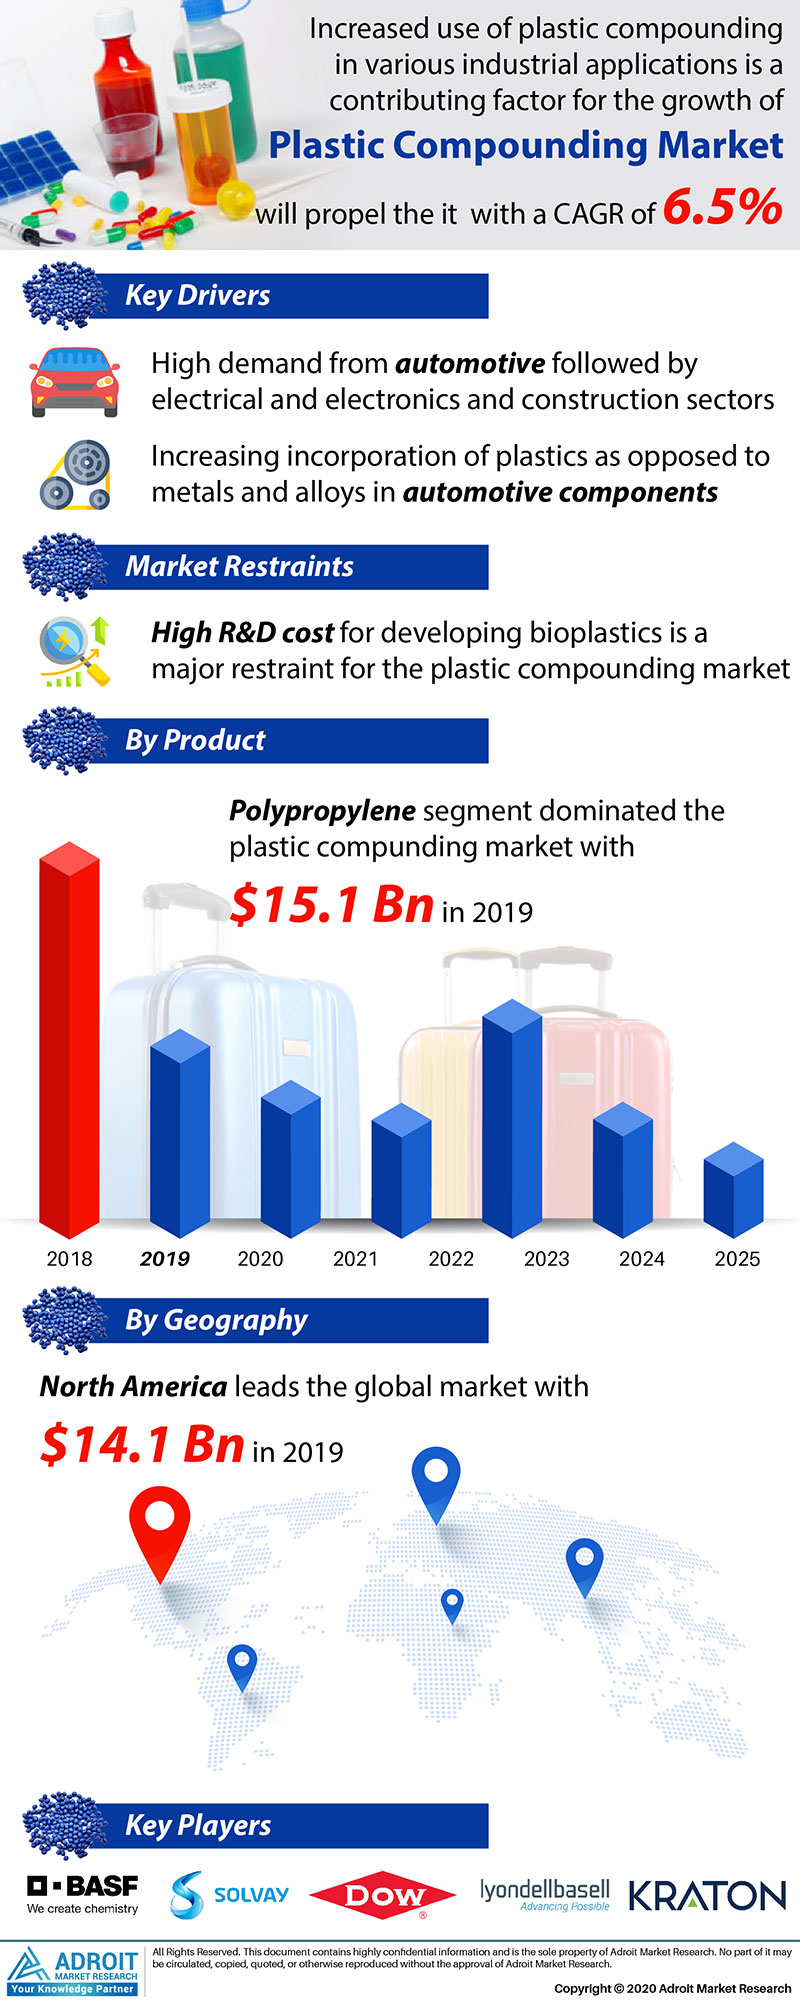 Plastic Compounding Market by Material, Application, and Region, Global Forecasts 2018 to 2025